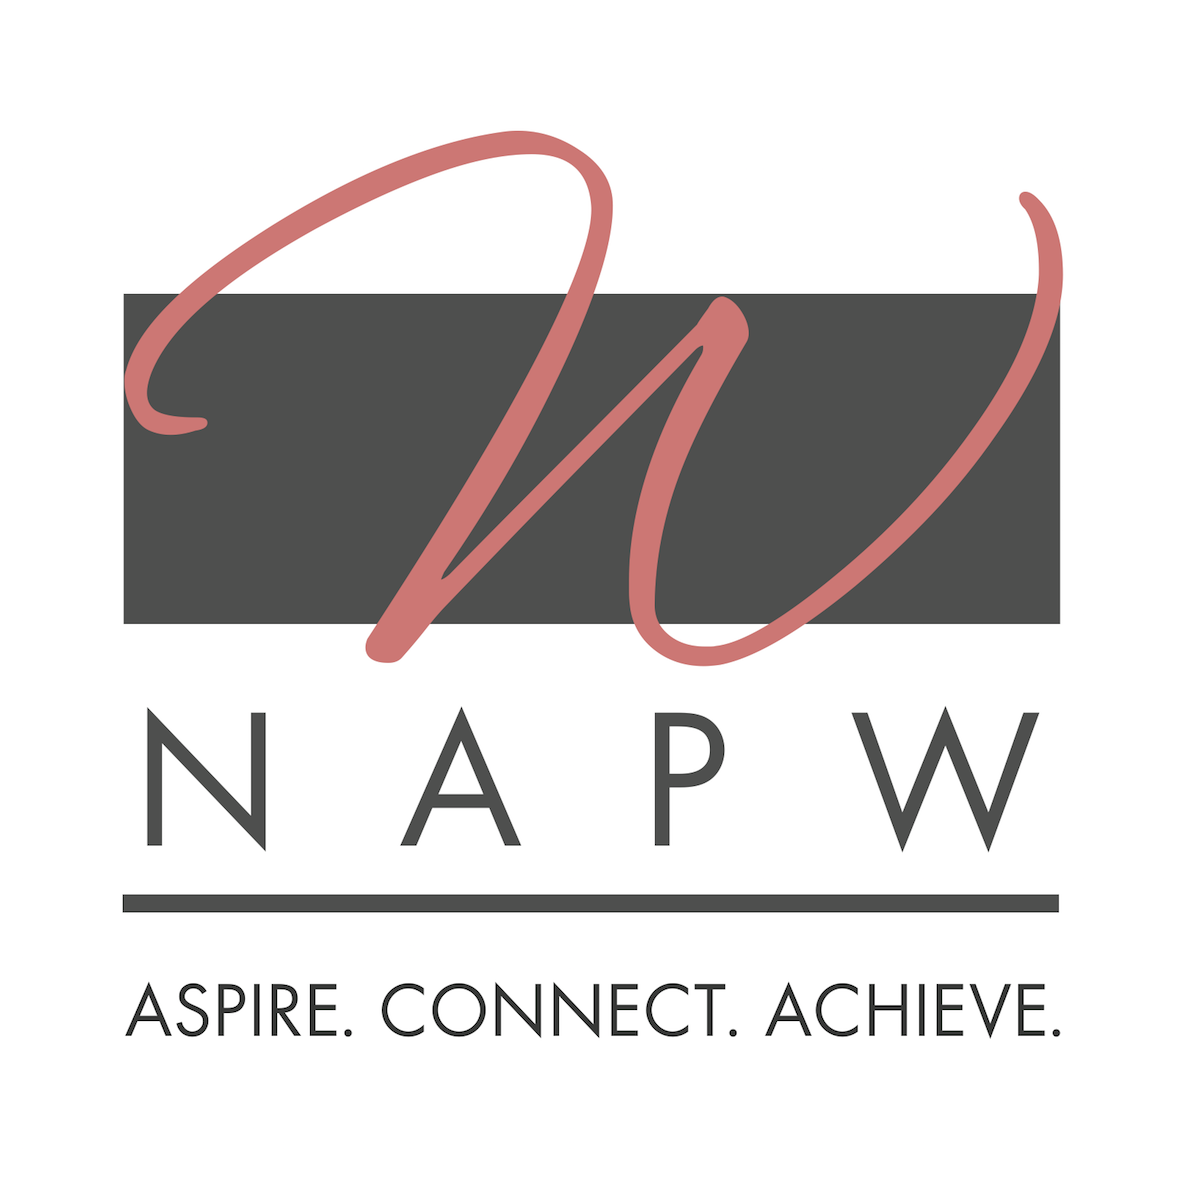 Welcome to national sales network - The National Association Of Professional Women Napw Aspire Connect Achieve